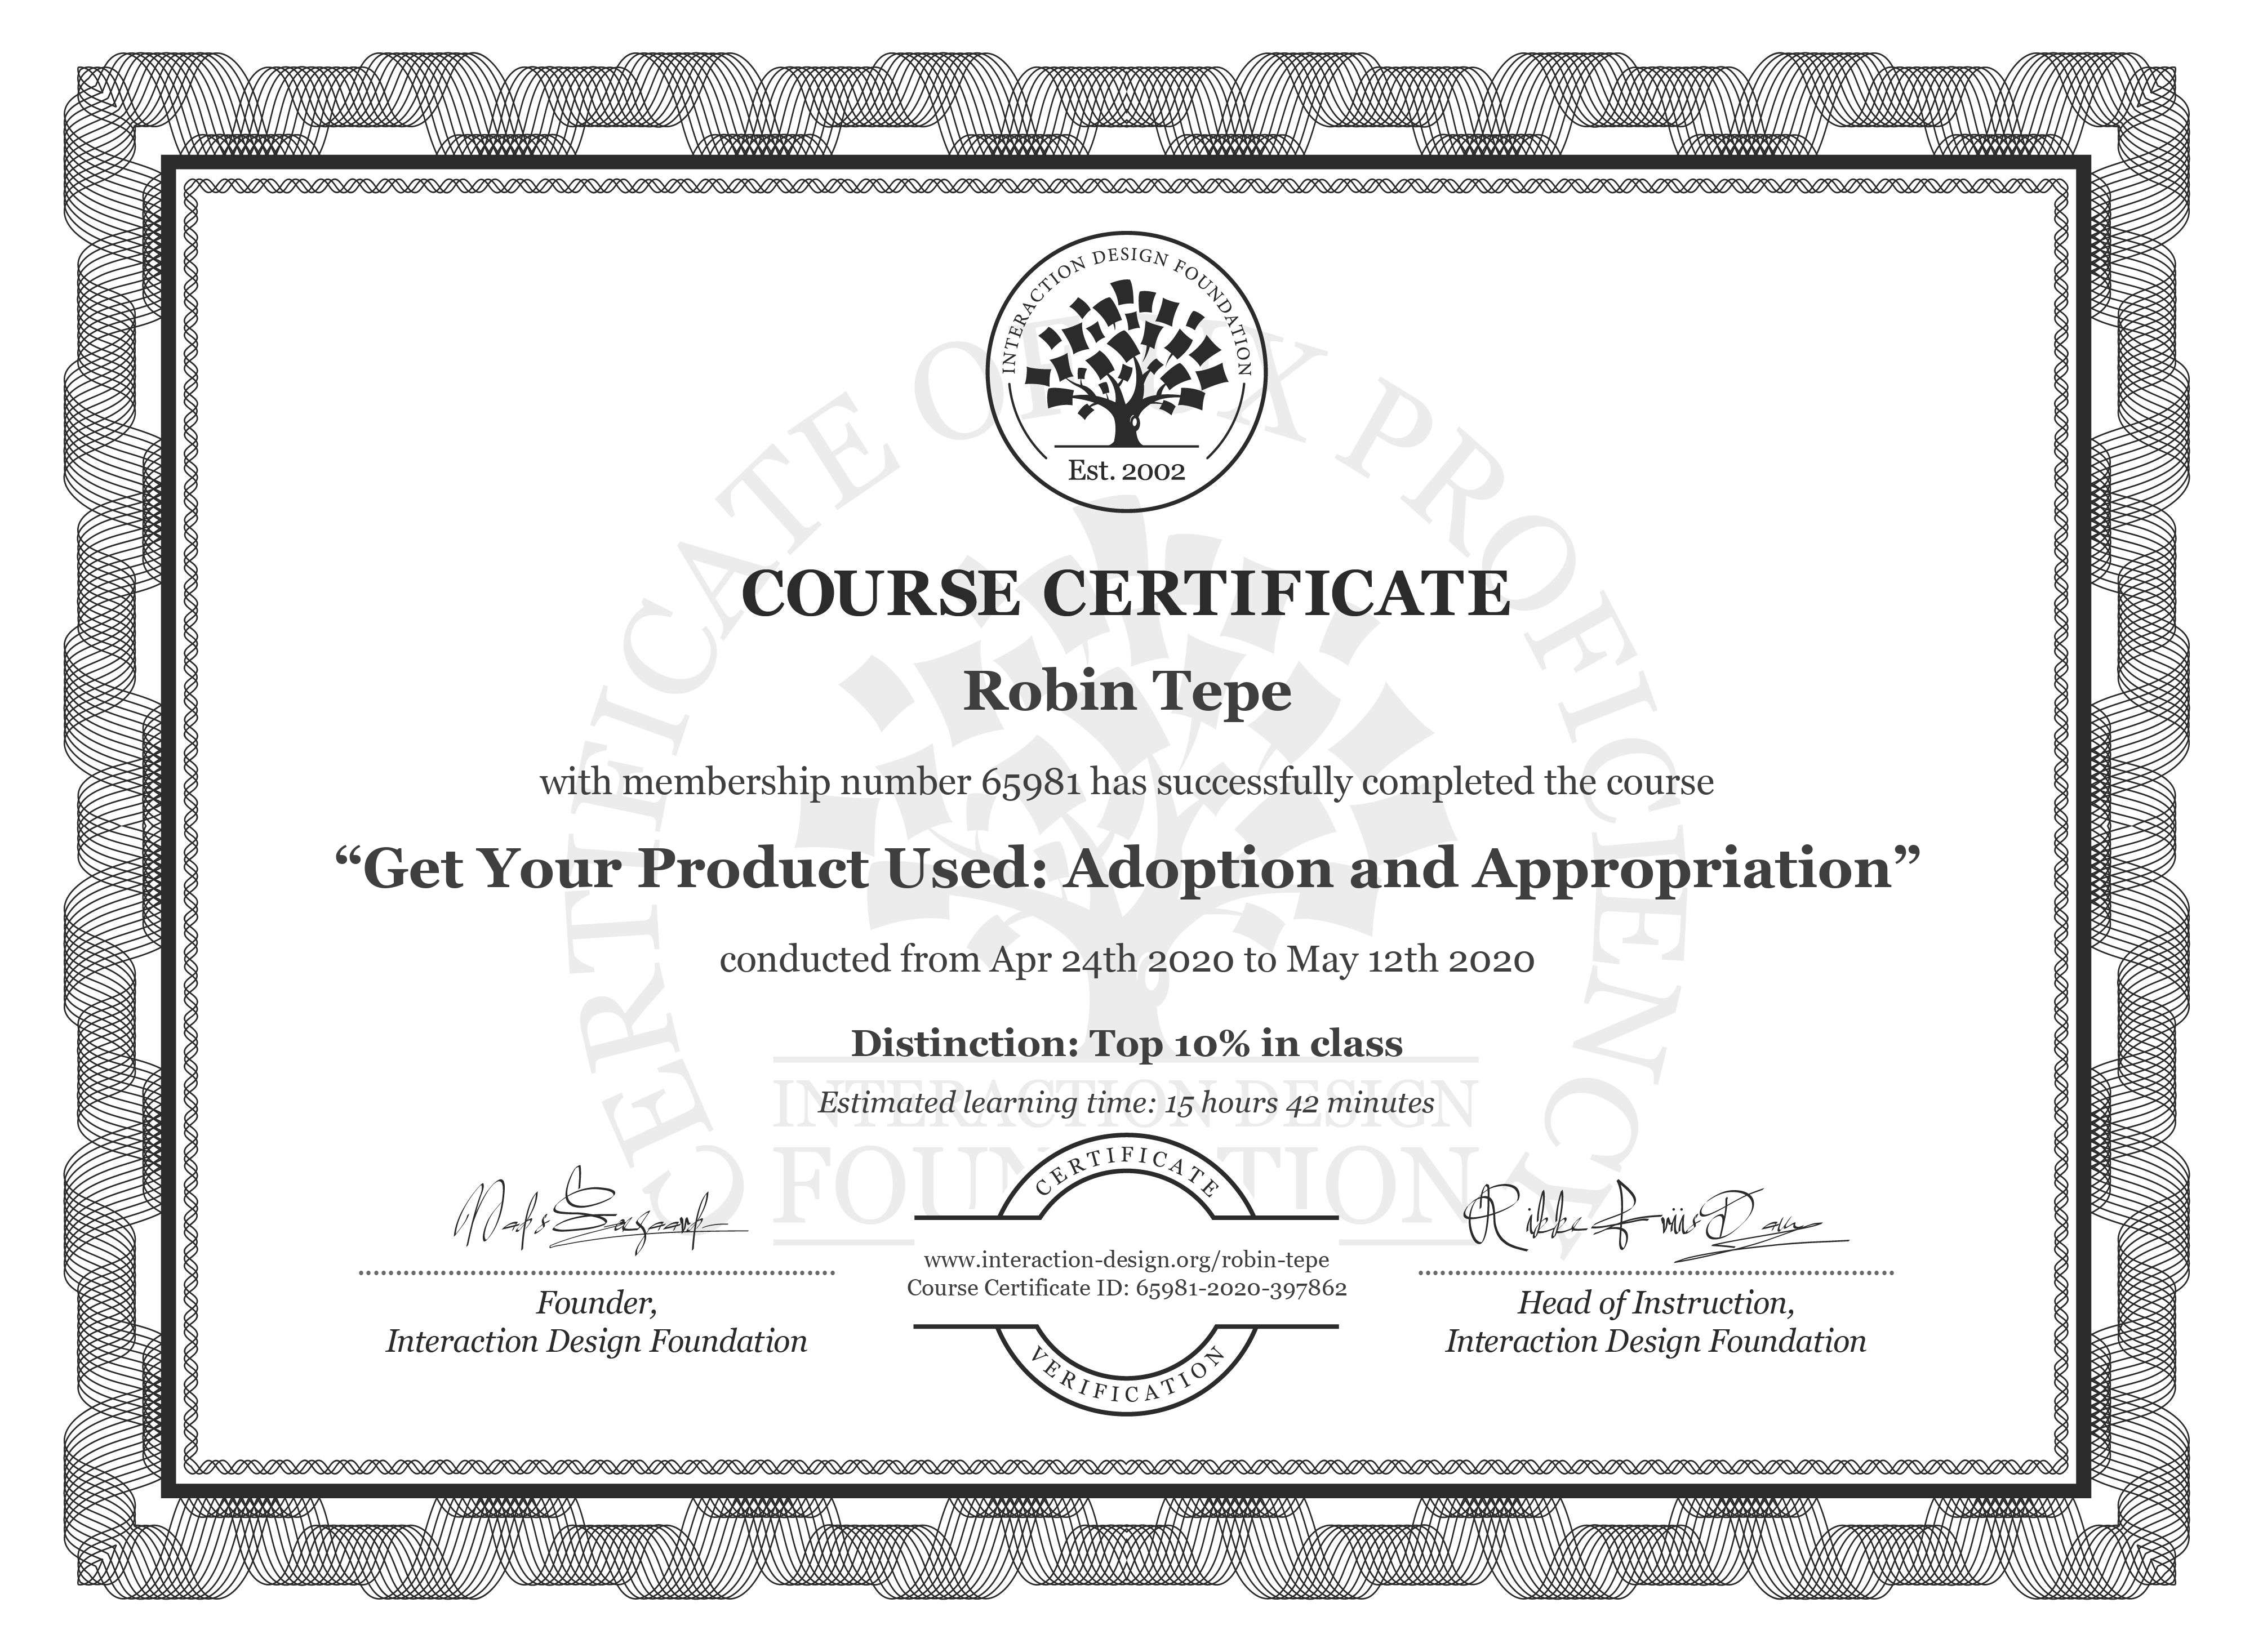 Robin Tepe's Course Certificate: Get Your Product Used: Adoption and Appropriation